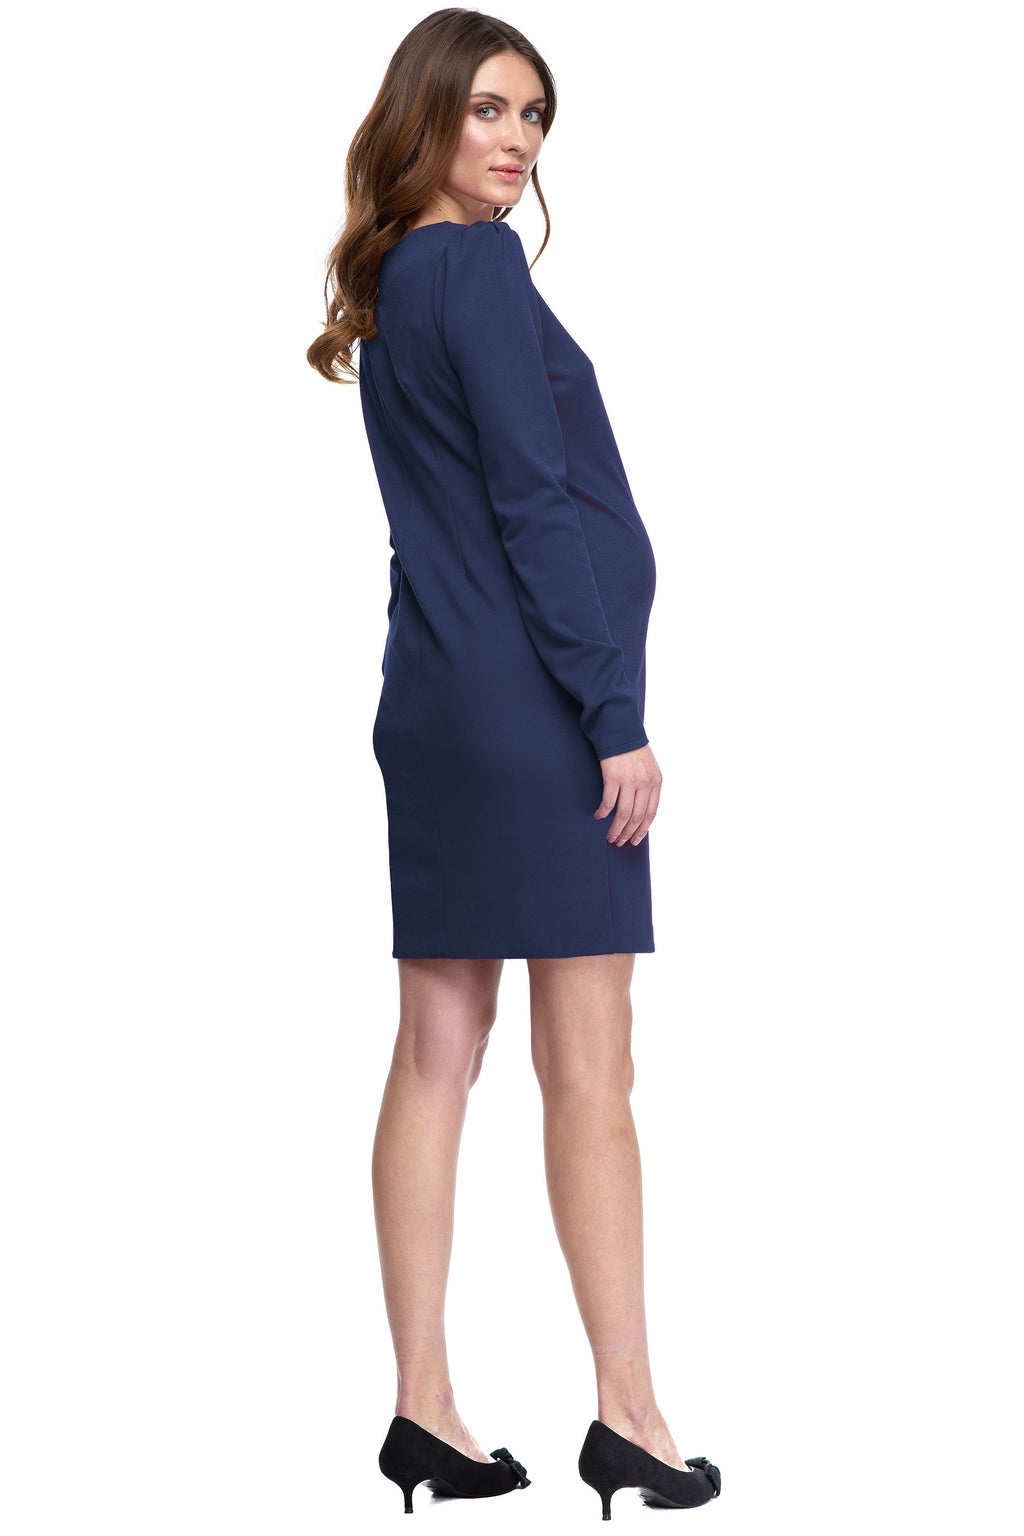 Reese Navy Maternity Shift Dress by Pietro Brunelli - Seven Women Maternity